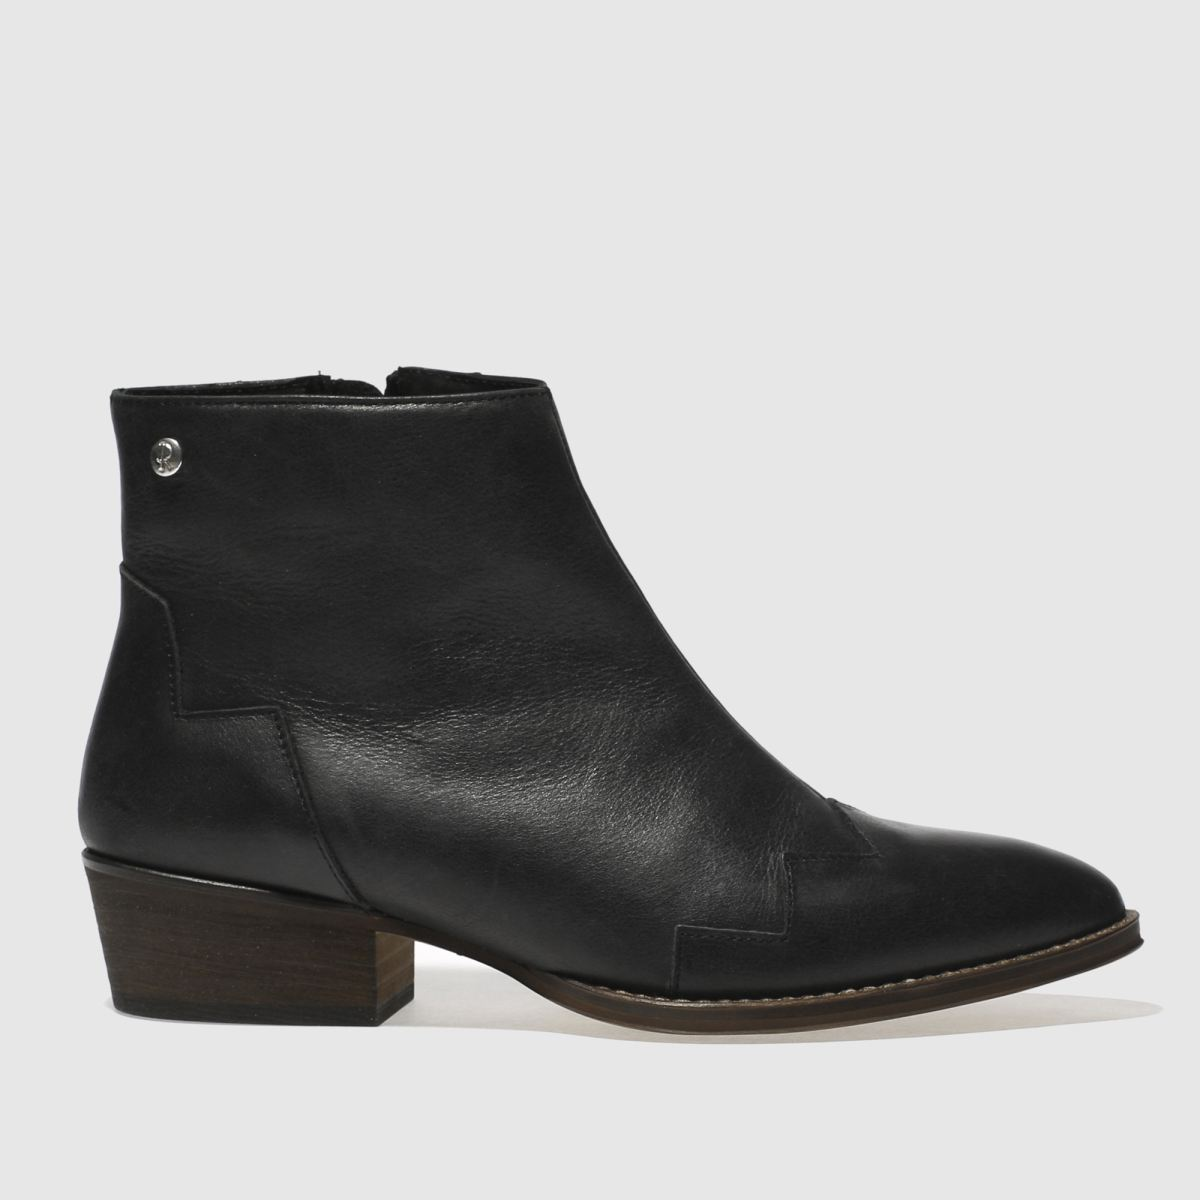 red or dead black roxetta boots